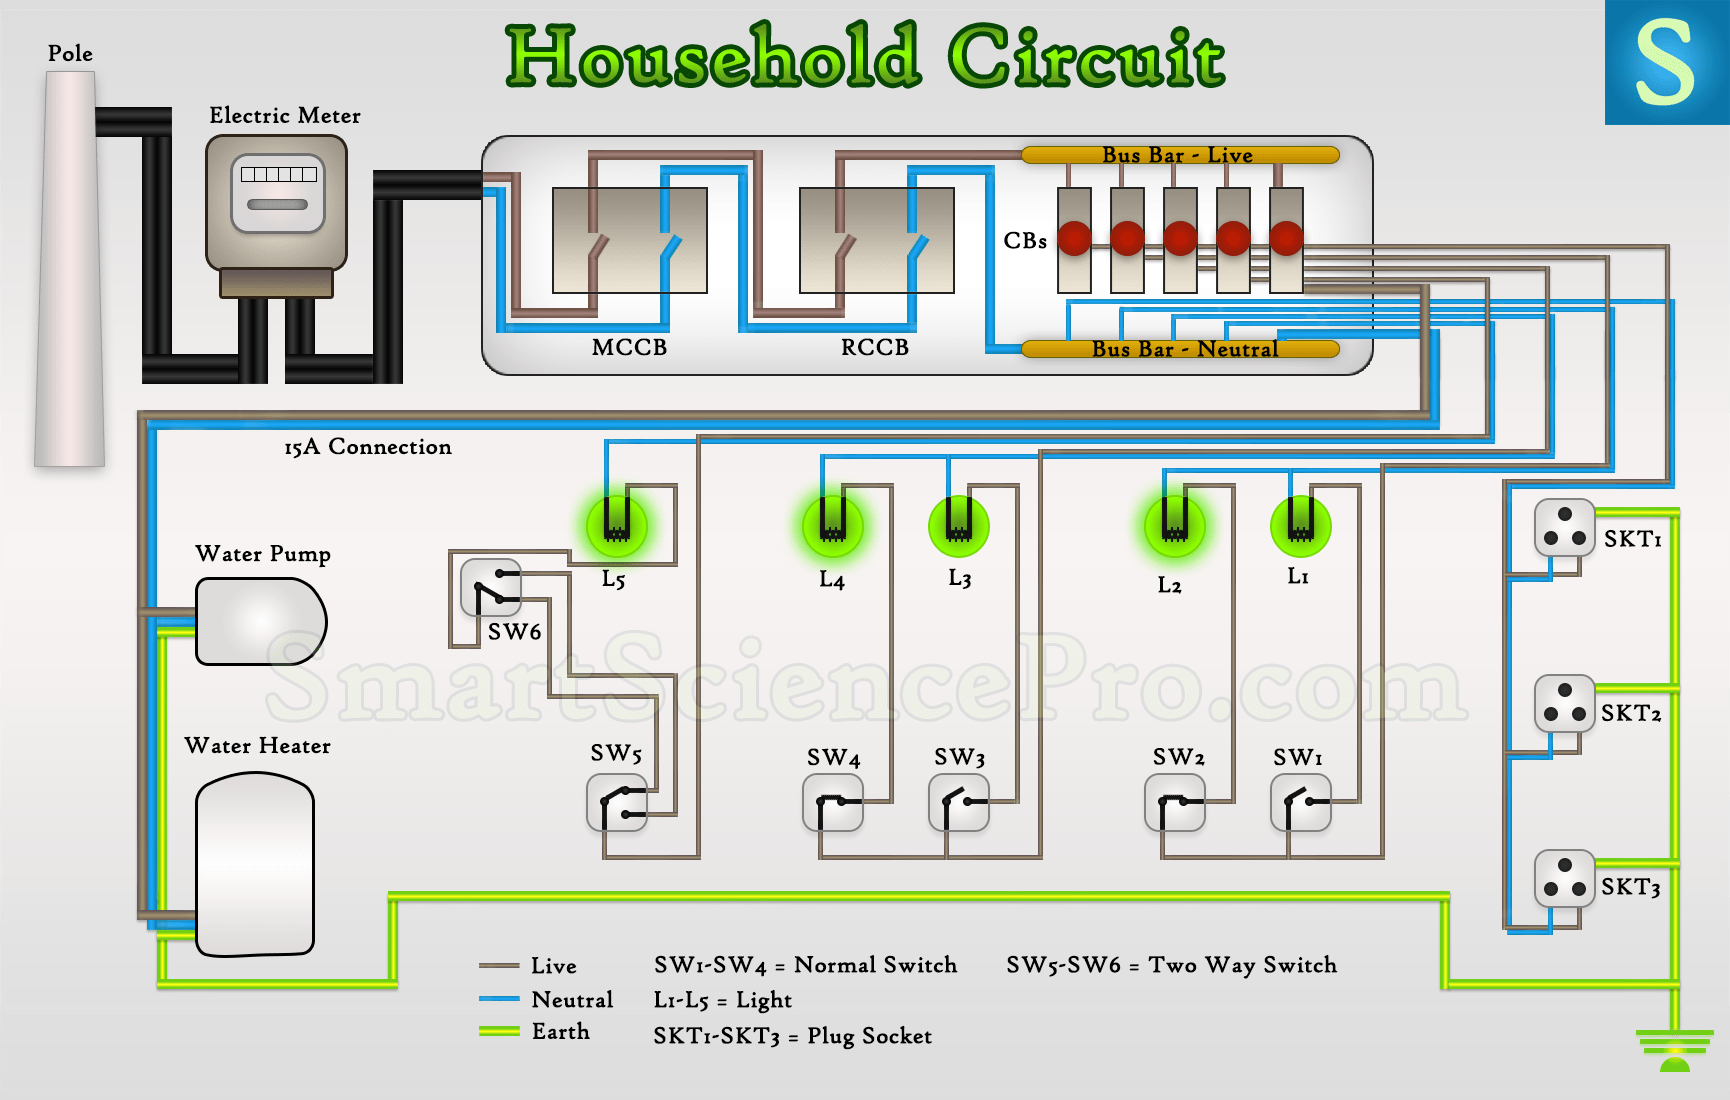 Surprising A Typical House Electrical Wiring In Wiring Diagram Ranpur Mohammedshrine Wiring Digital Resources Ranpurmohammedshrineorg